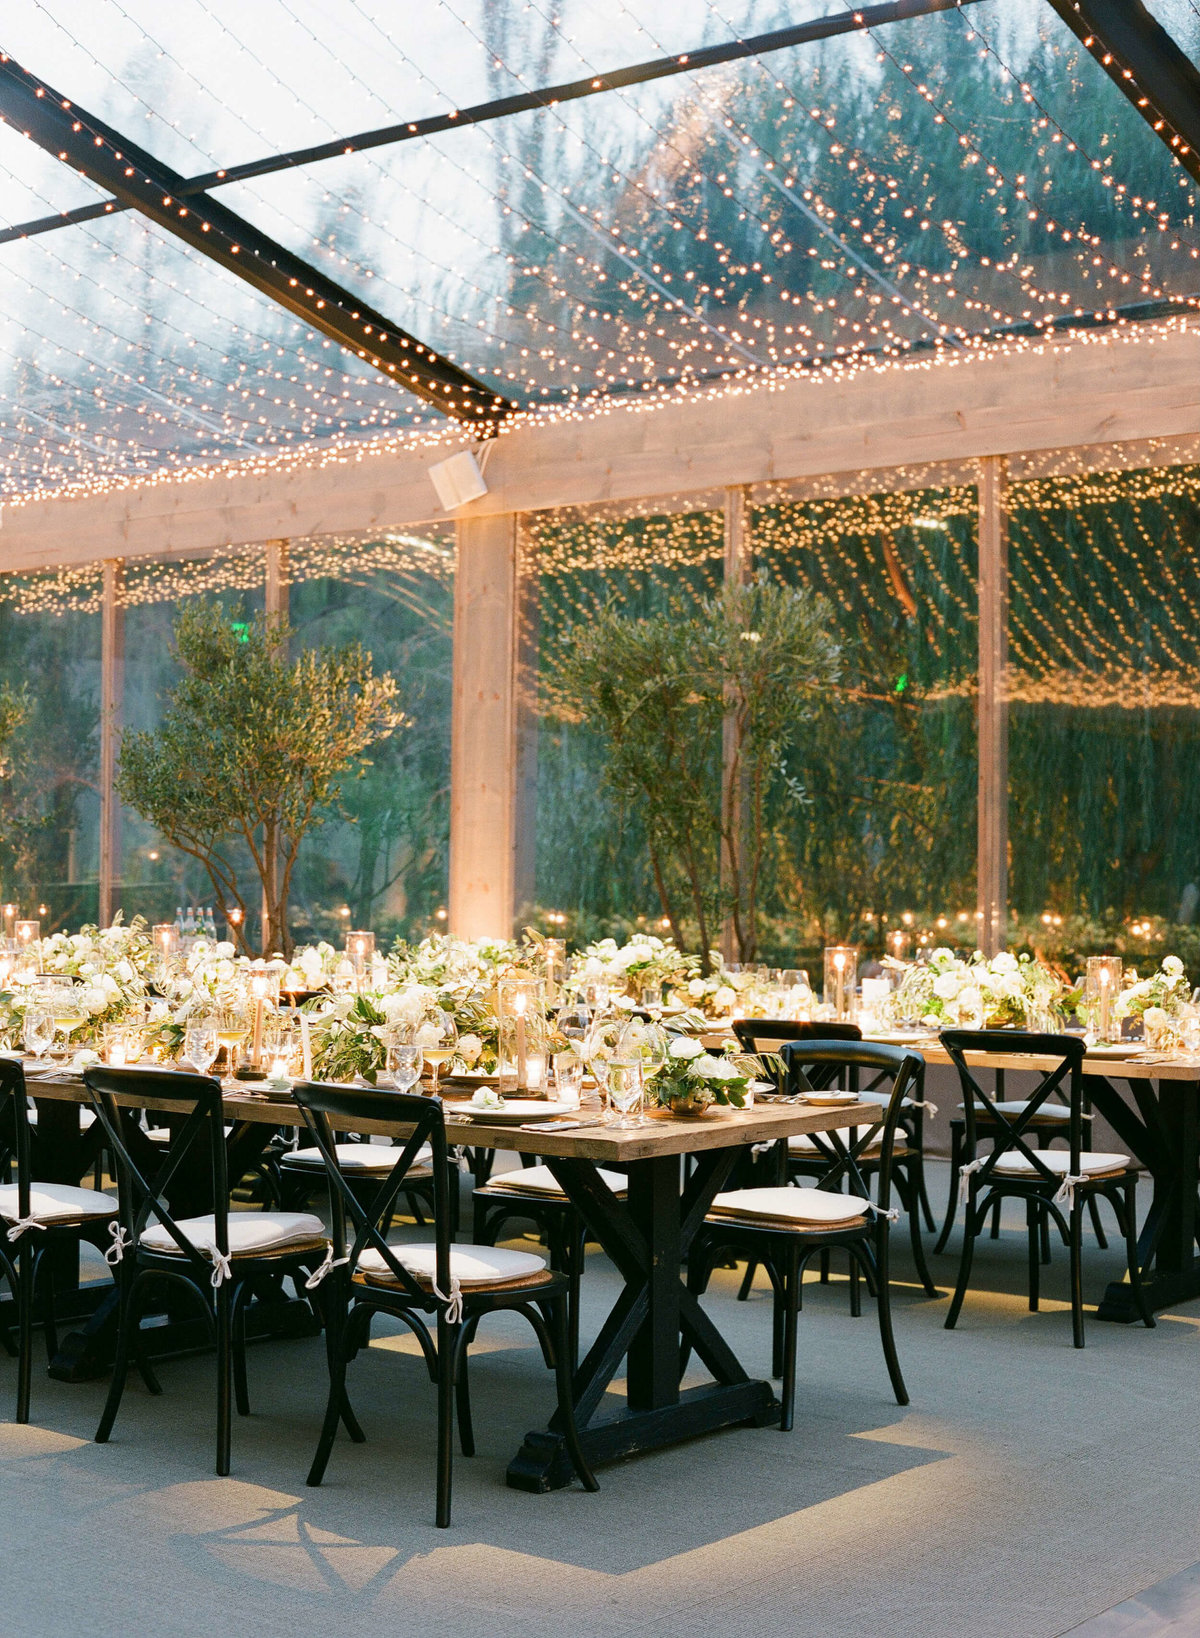 91-KTMerry-weddings-clear-tent-Meadowood-Napa-Valley